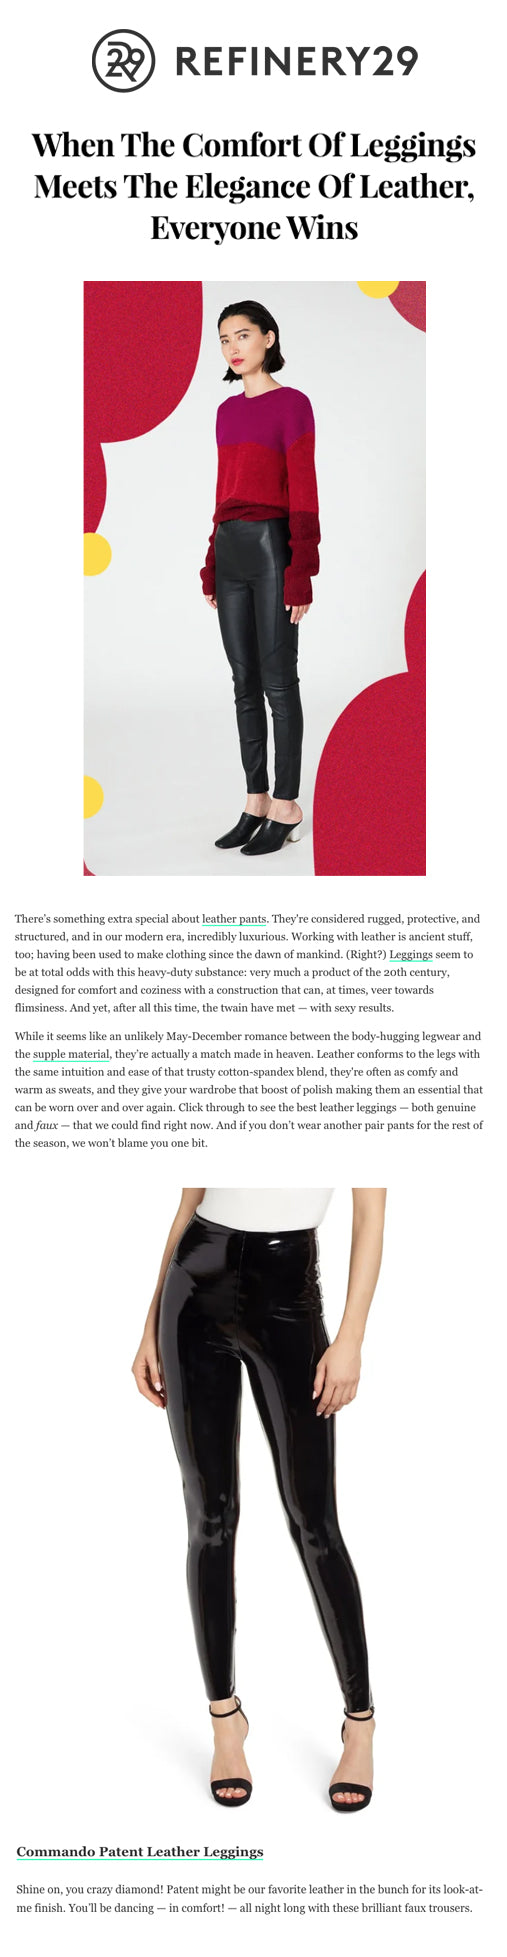 Patent Leather Leggings on Refinery29